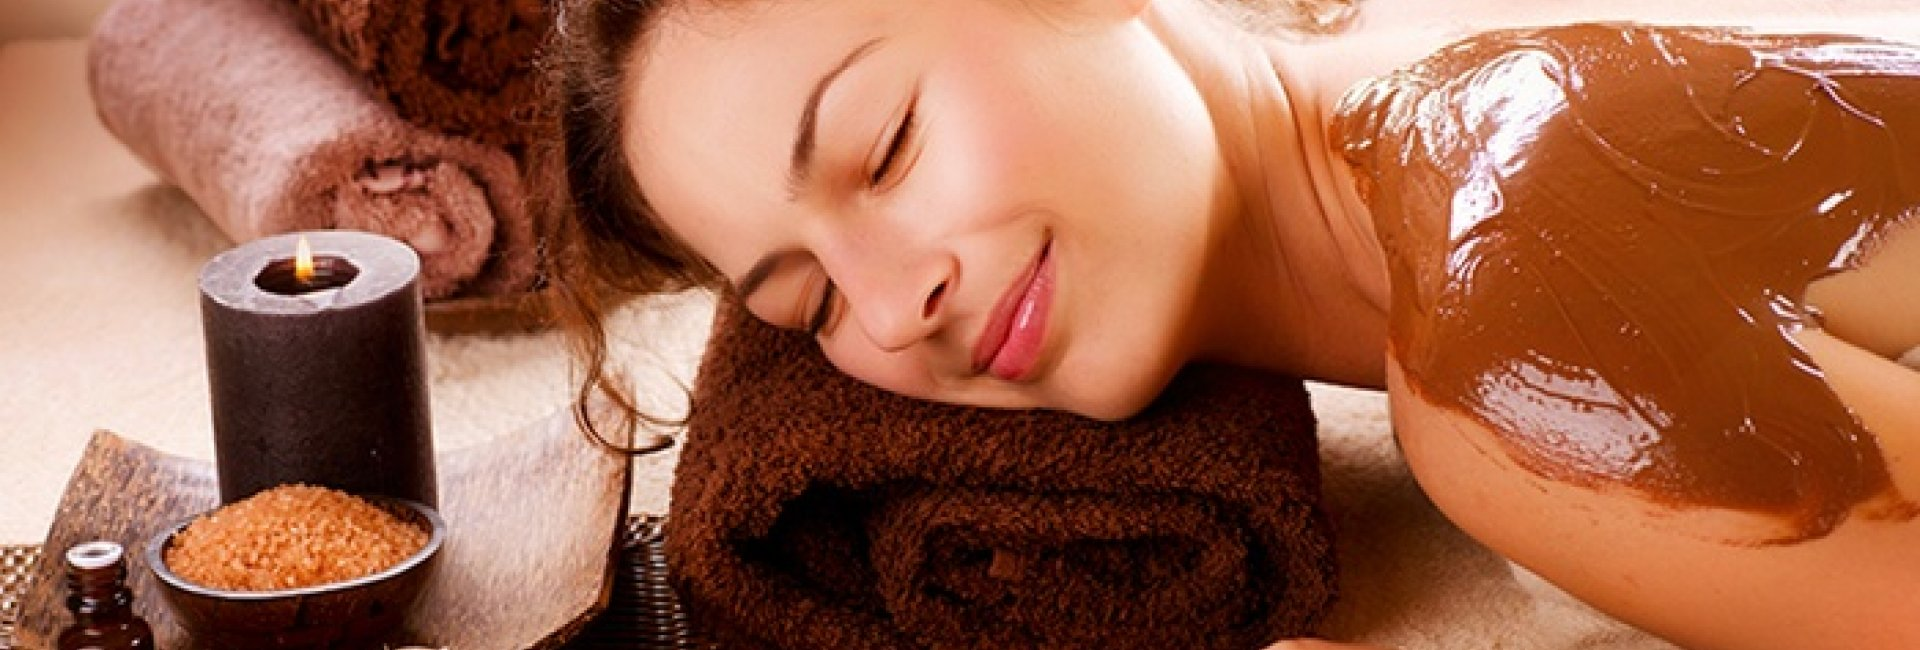 Chocolate Day&Night SPA dla dwojga (1 doba)